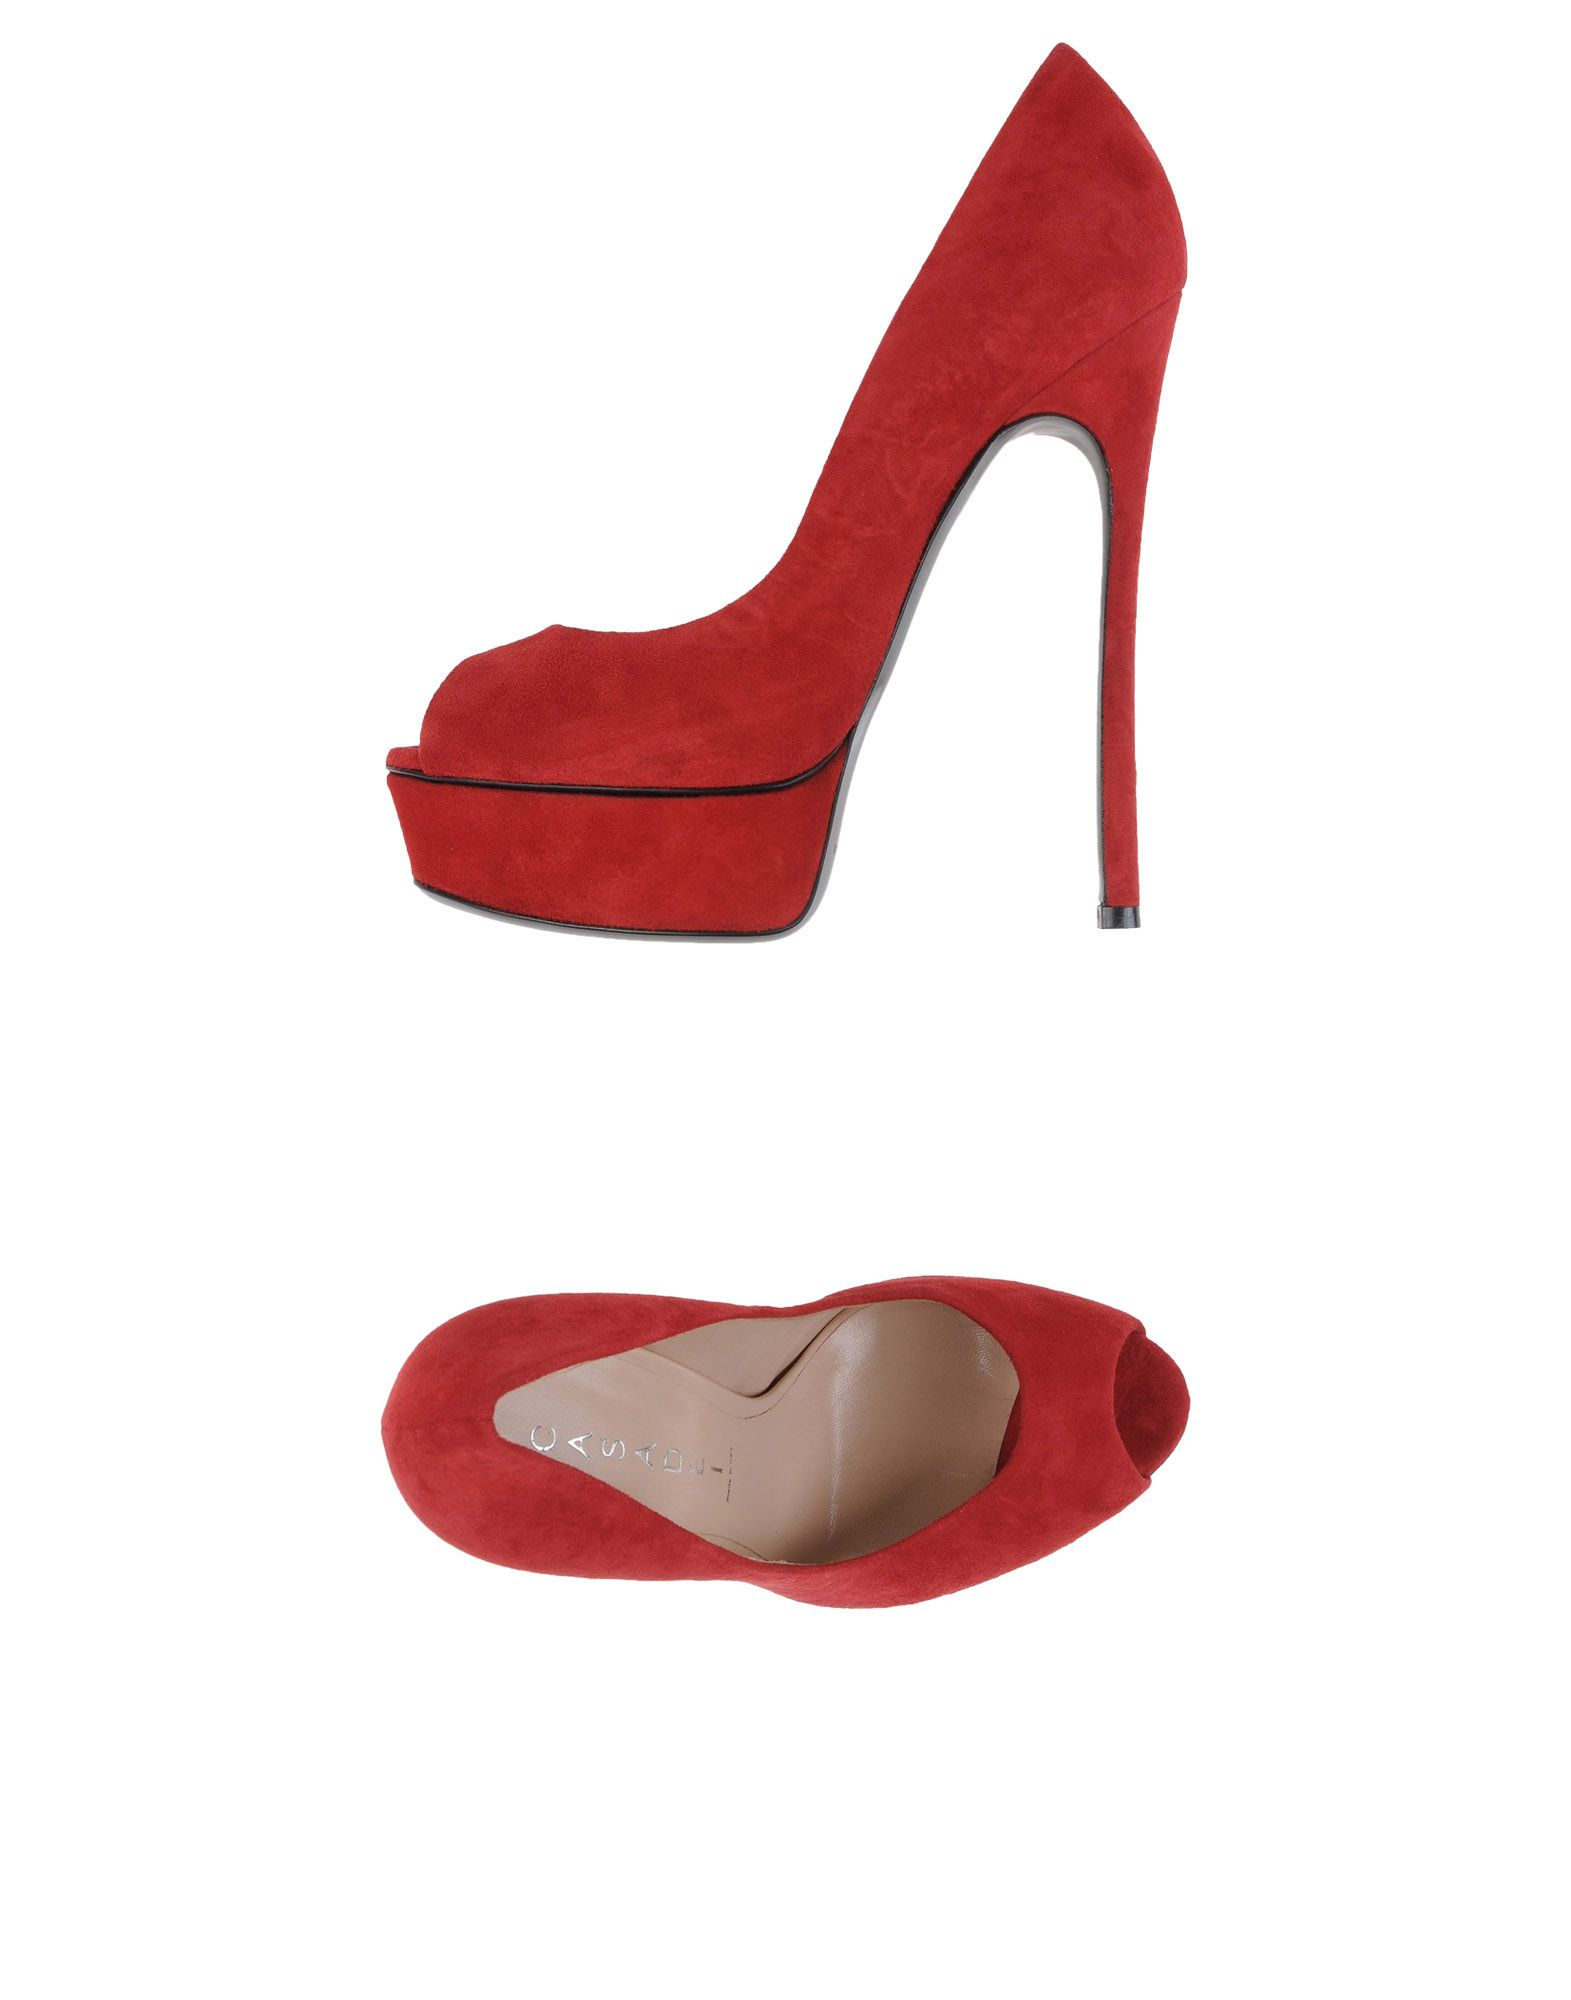 e9b6da0925b Casadei Pump In Red